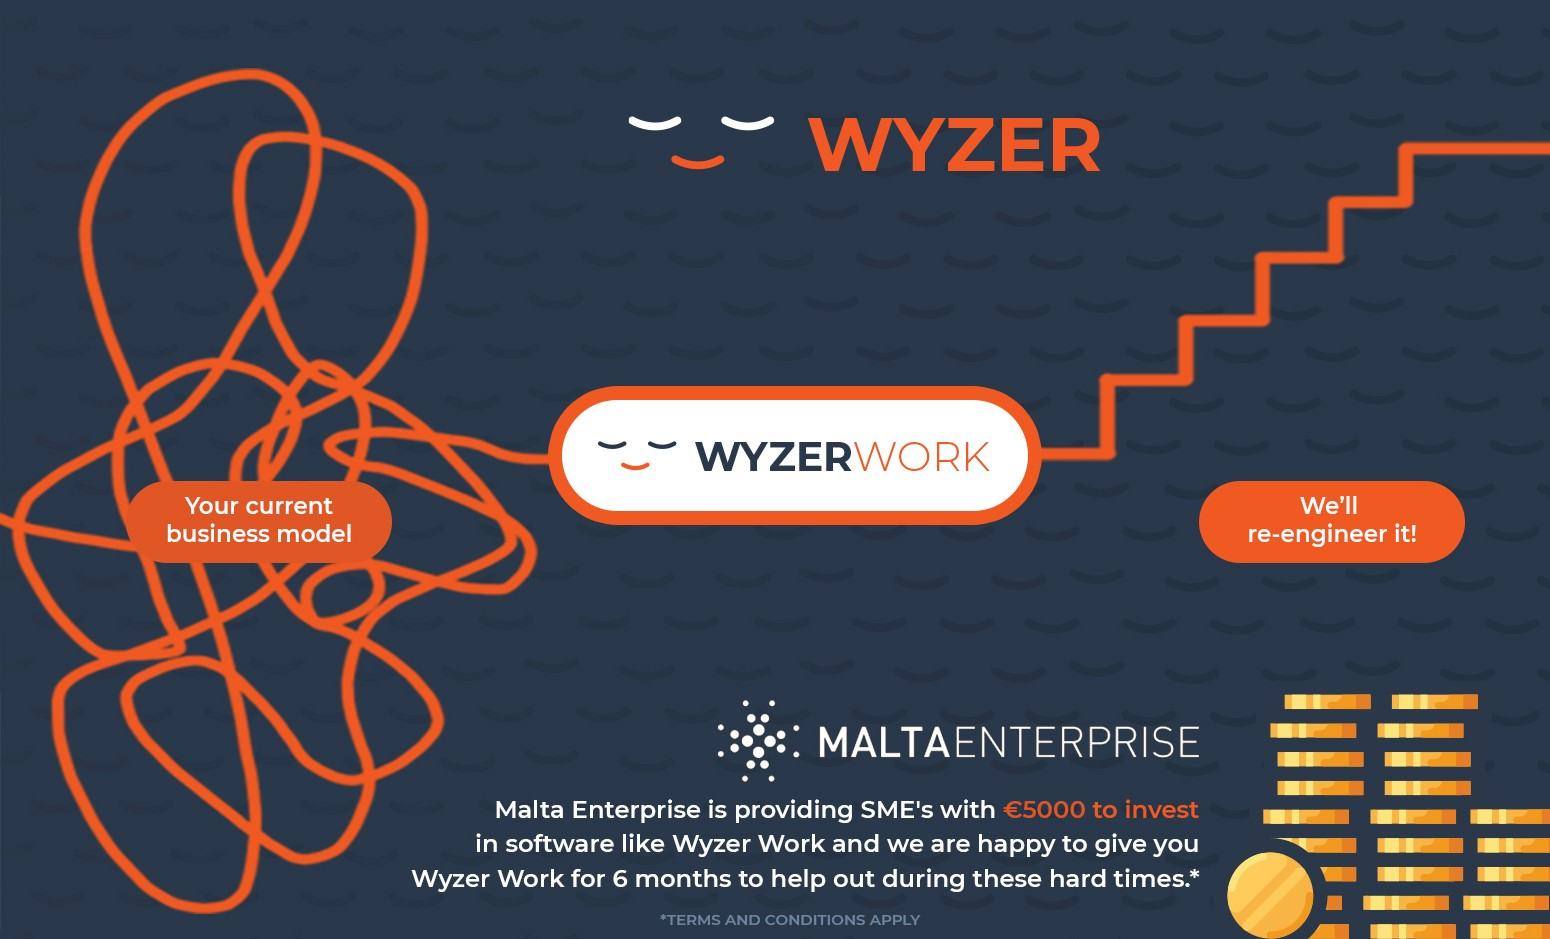 Malta Enterprise Business Re-engineering scheme and Wyzer Work